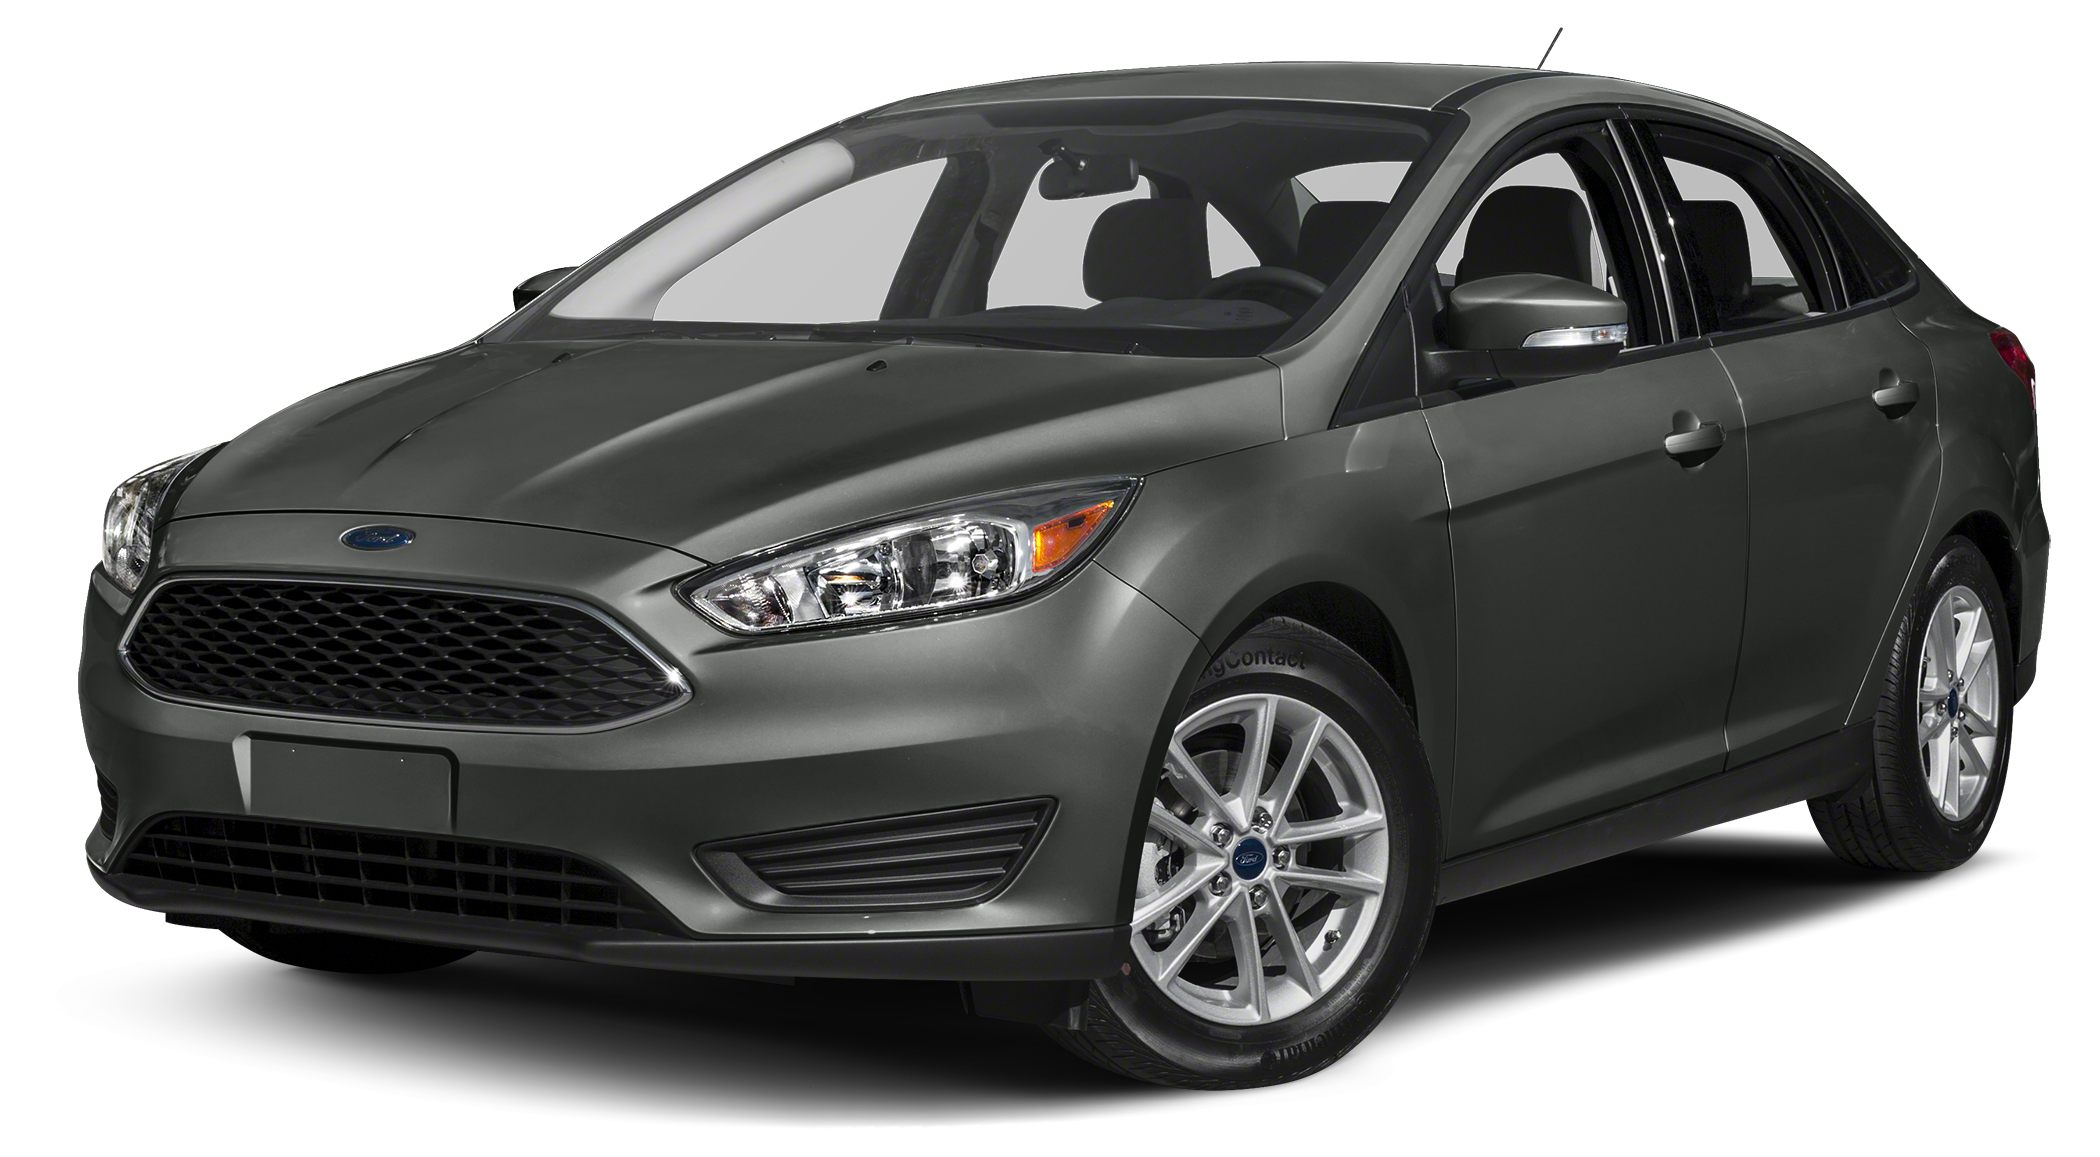 2018 Ford Focus S Choosing the 2018 Ford Focus you want is no easy task All models are sleek spo